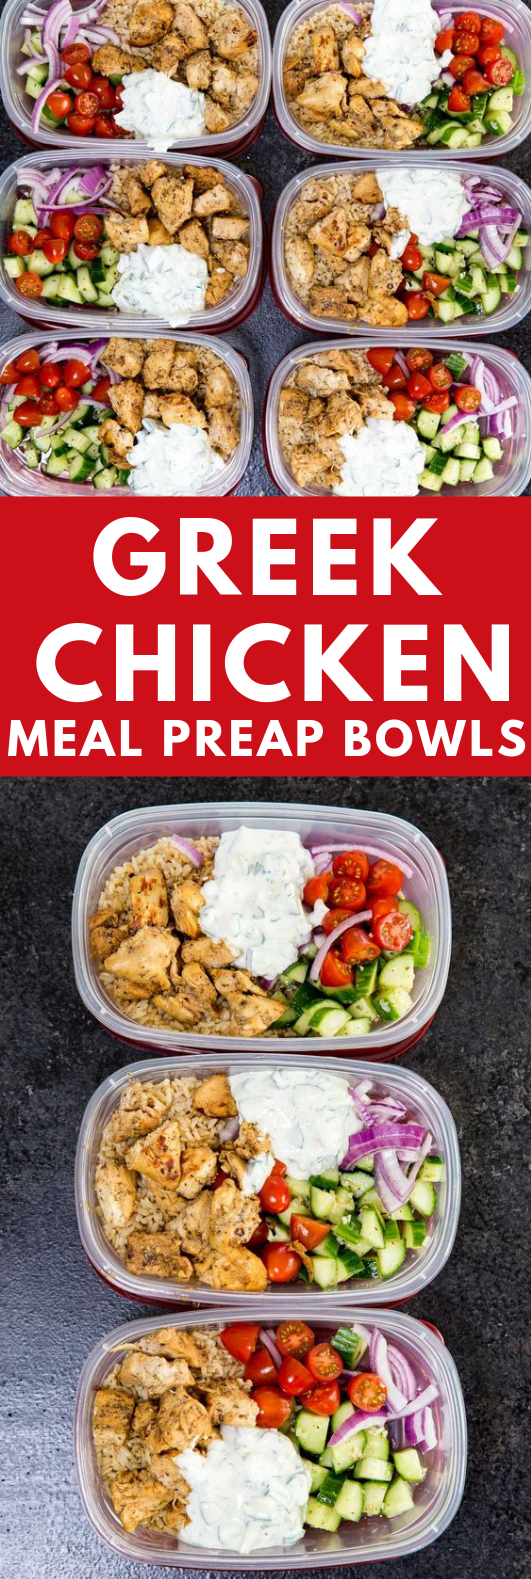 Greek Chicken Bowls (Meal Prep Easy) #Meal #Bowls images